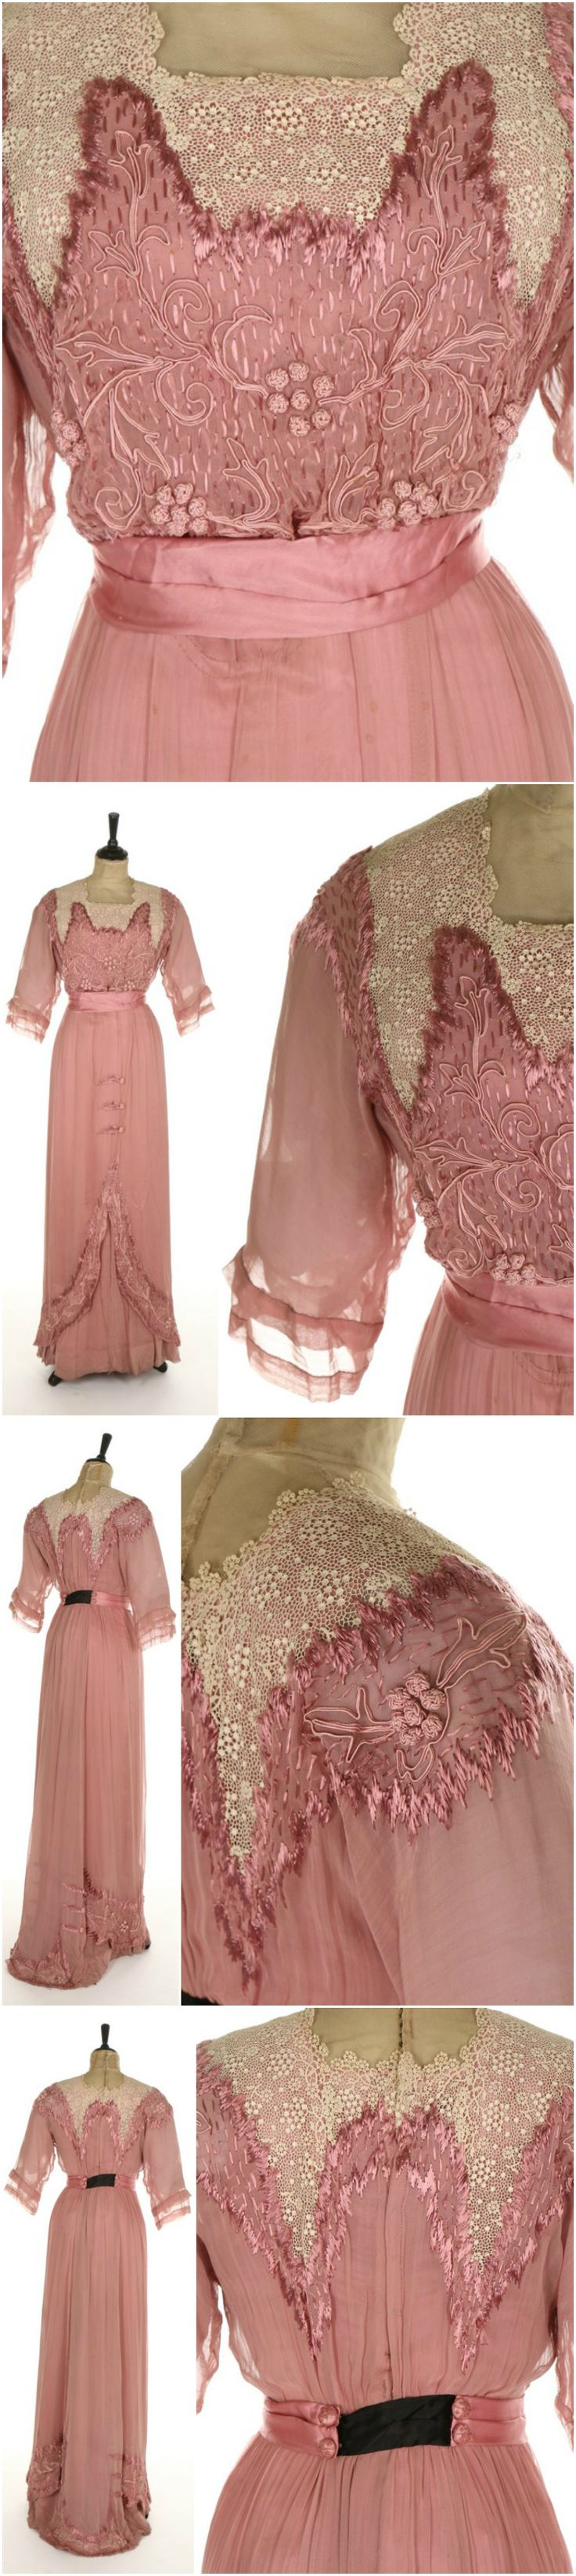 An Anna Weber of Karlsruhe, Germany embroidered pink muslin dress, the bodice and hem edges with soutache braid and French knots, floss silk edges and faux Alençon lace, satin waist sash. Circa 1910-11. Kerry Taylor Auctions.